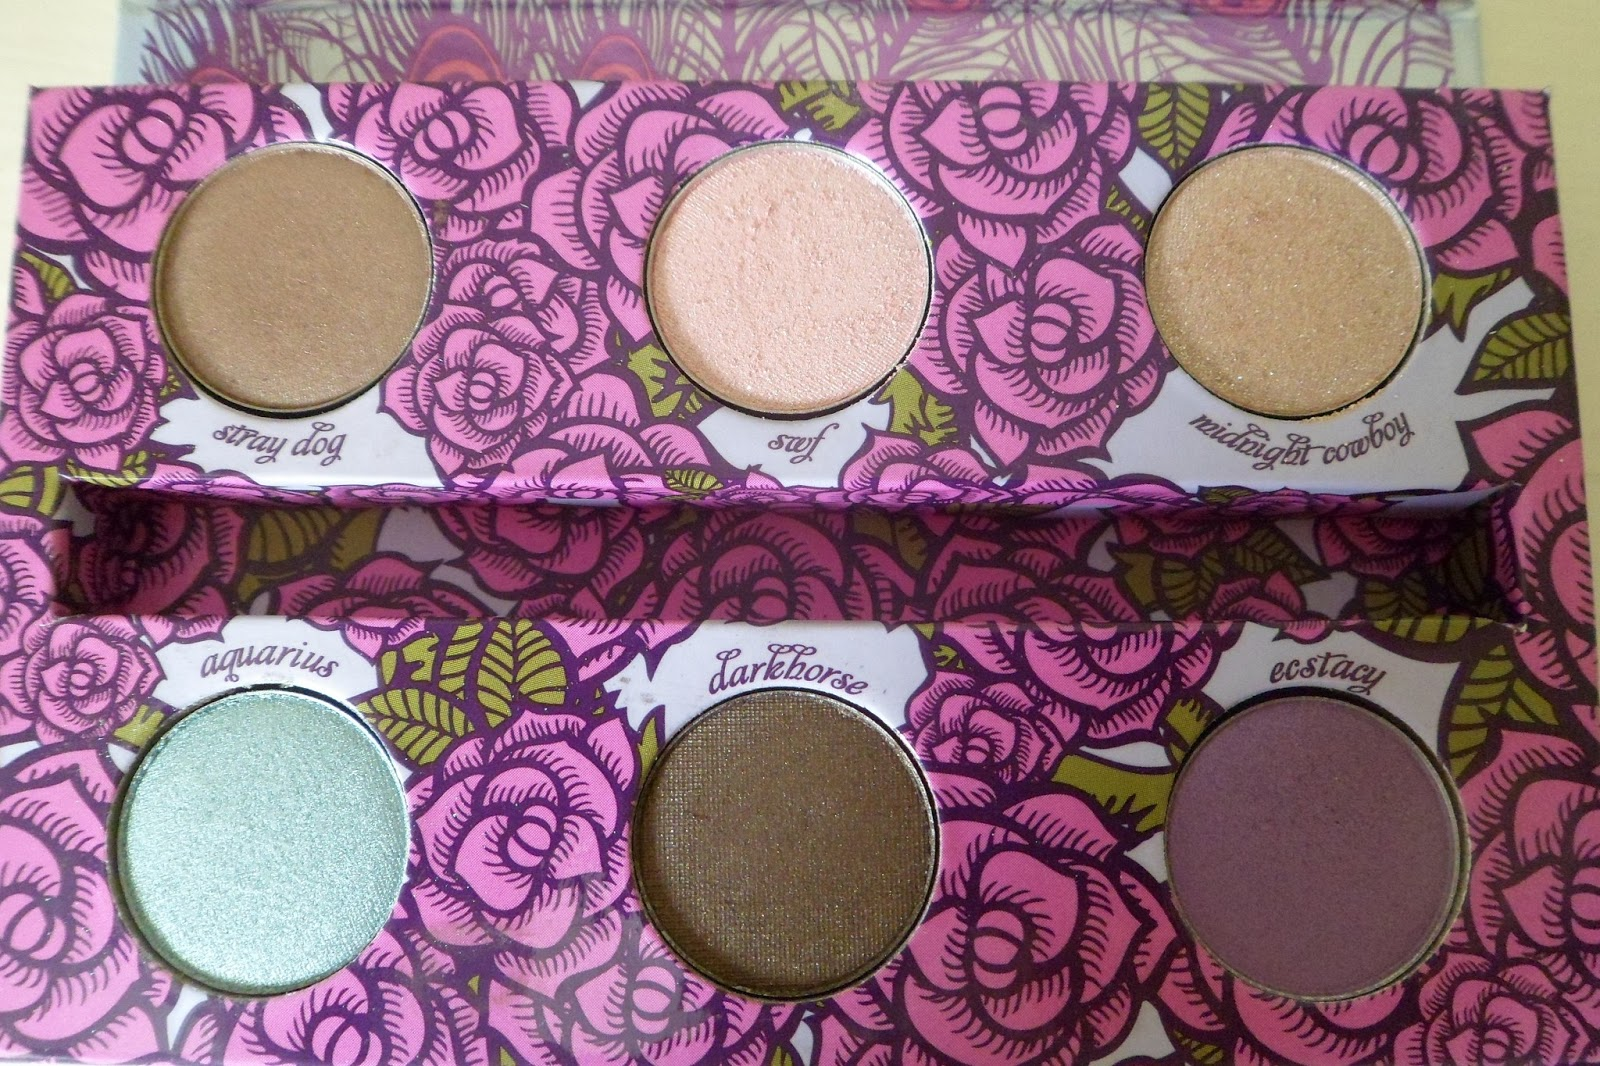 monkeytoes and manicures urban decay feminine palette review and